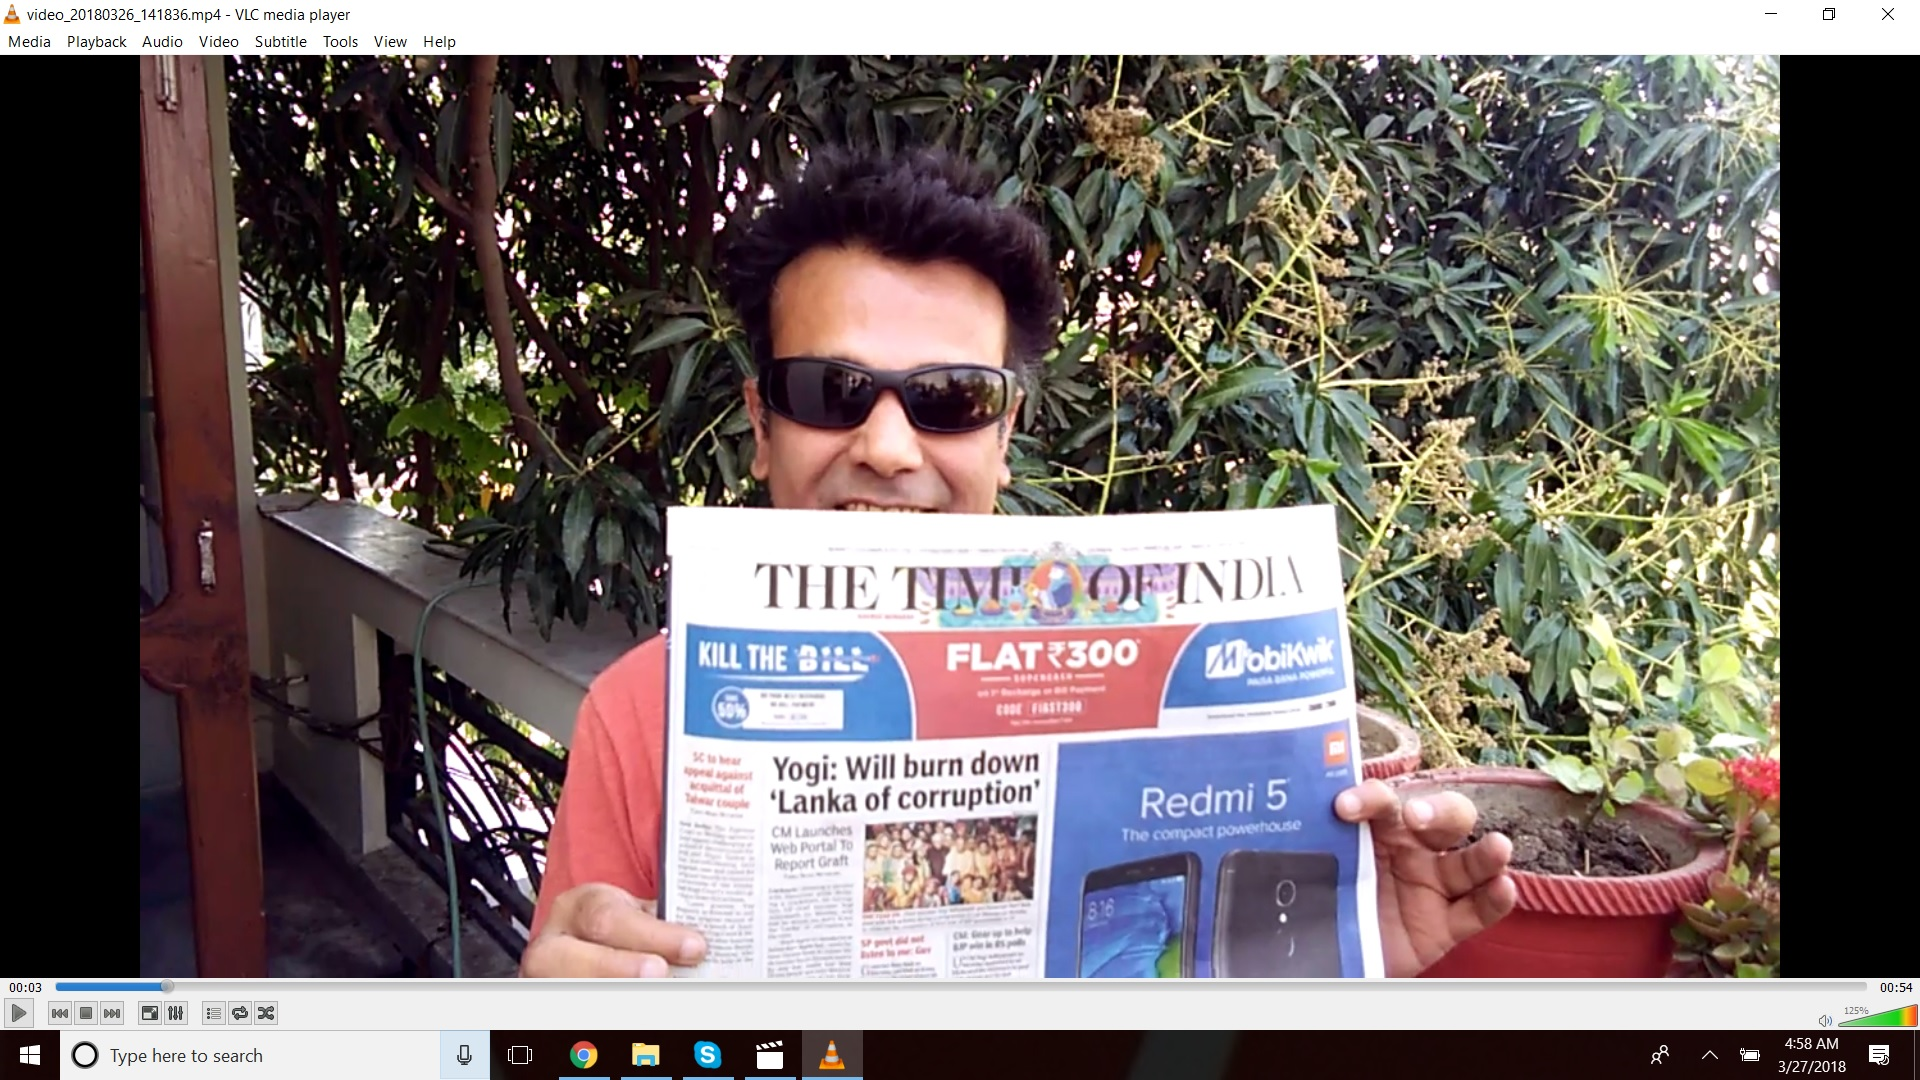 I HAVE NO SLEPT FOR 2 DAYS - I HAVE NOT BEEN ABLE TO EVAN TAKE A SHOWER - FROM AJAY TO OBAMA AND CLINTON - THIS ME TOLD U IS SO VEYR INDIAN - SANJAY DUTT - SEE MEANS DEKHO AB - 1987 GAUS